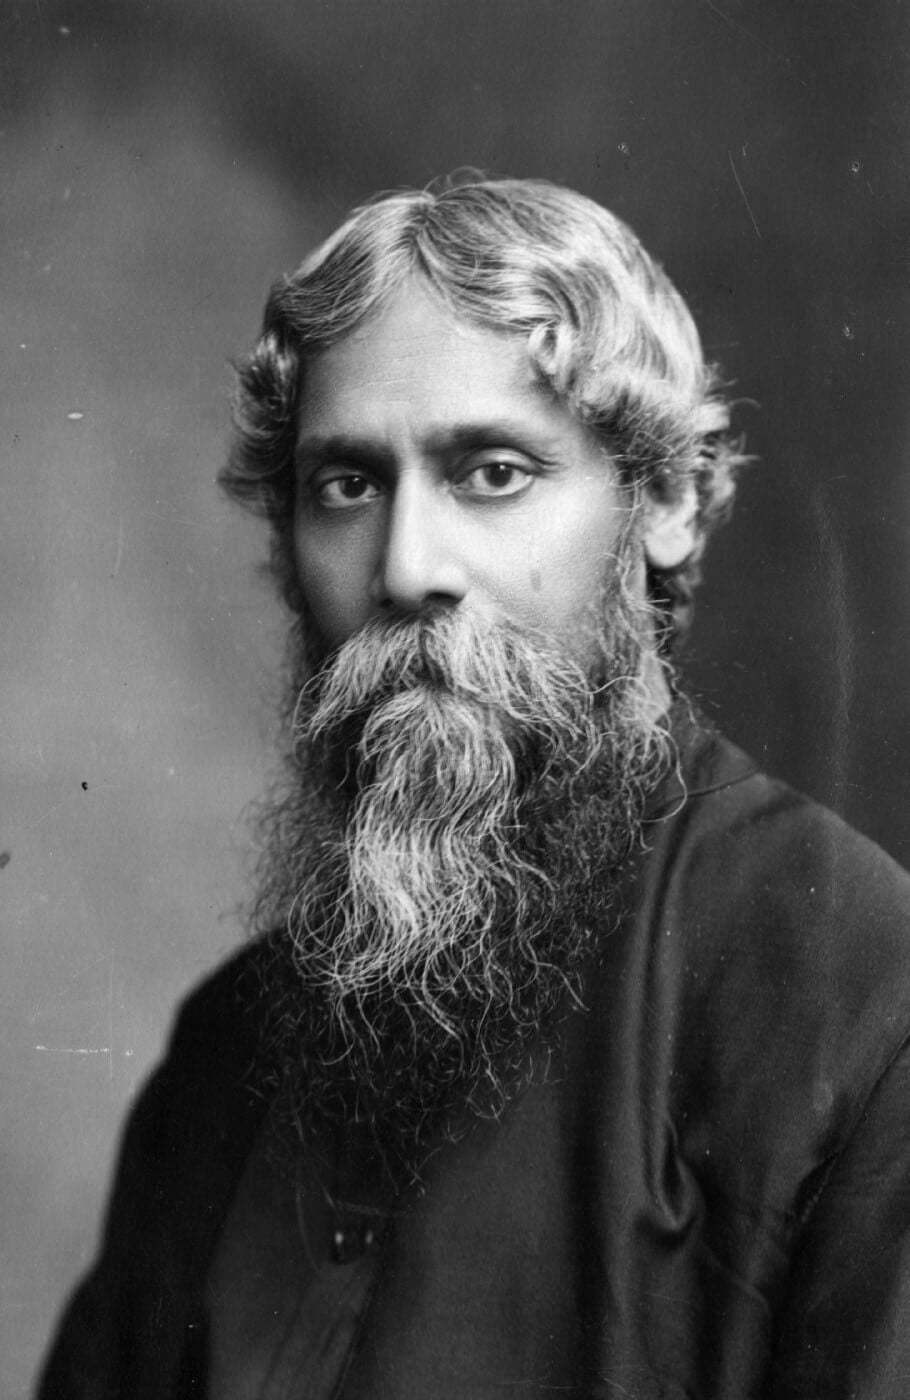 Rabindranath Tagore Paintings | Buy Posters, Frames, Canvas, Digital Art & Large Size Prints Of The Famous Old Master's Artworks